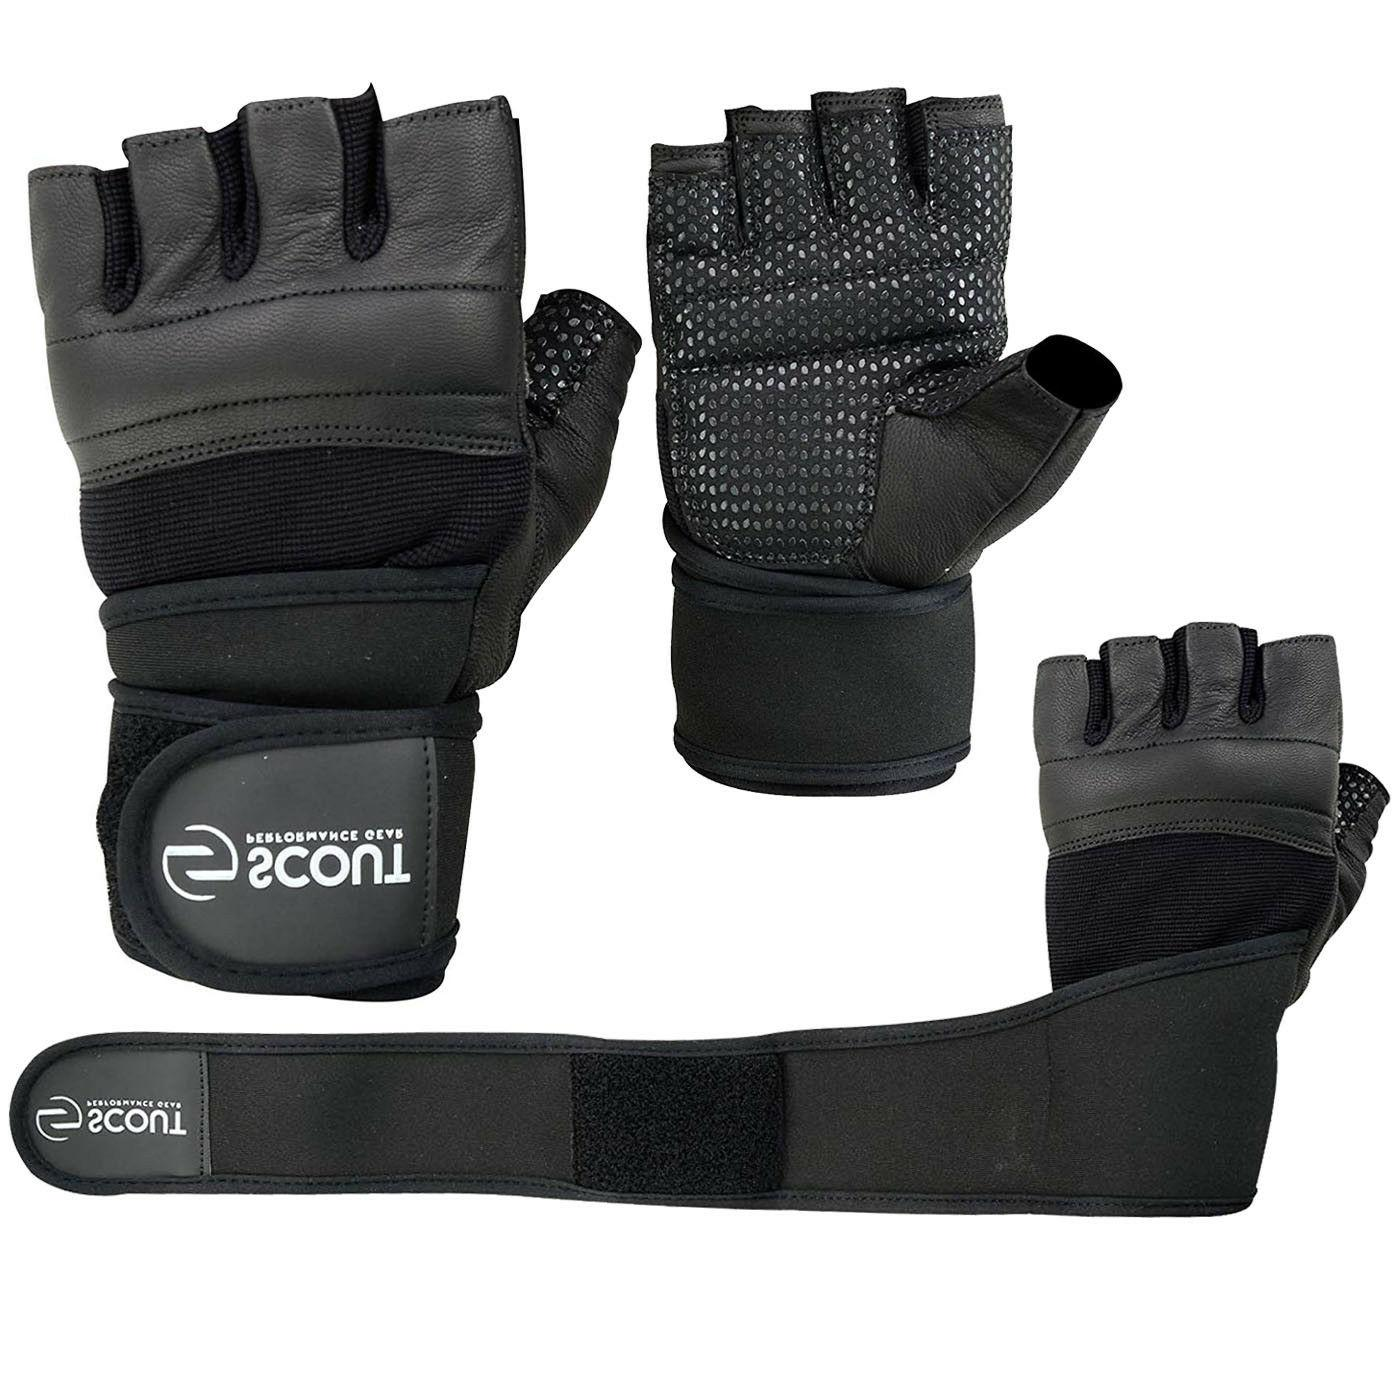 weight lifting gloves with long wrist wraps